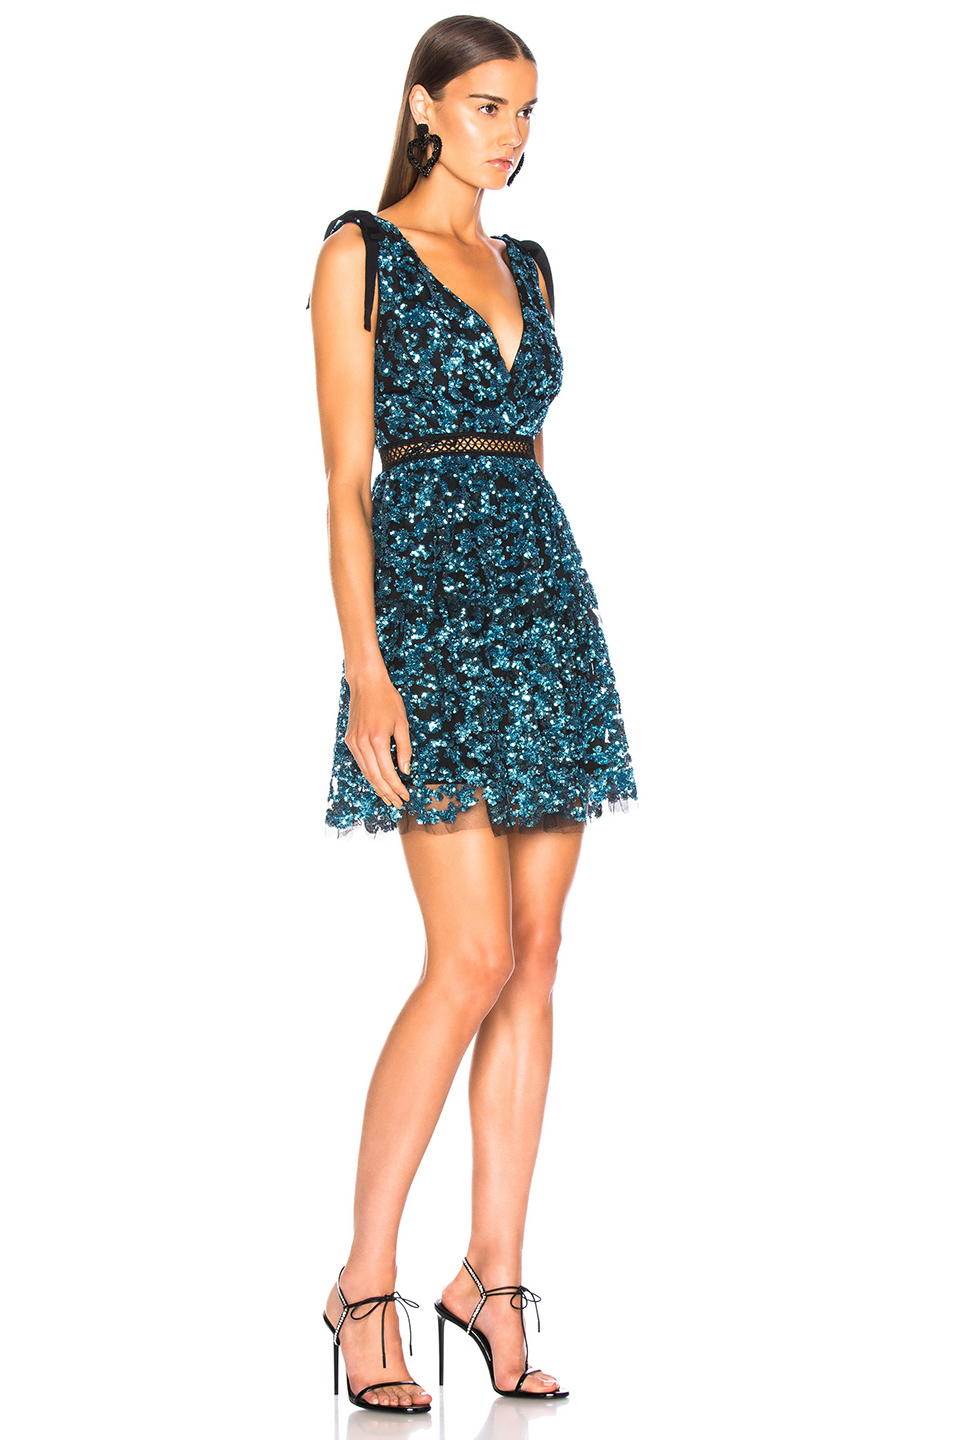 b7f09c8bdd8bc Buy Original self-portrait Tiered Sequin Mini Dress at Indonesia ...